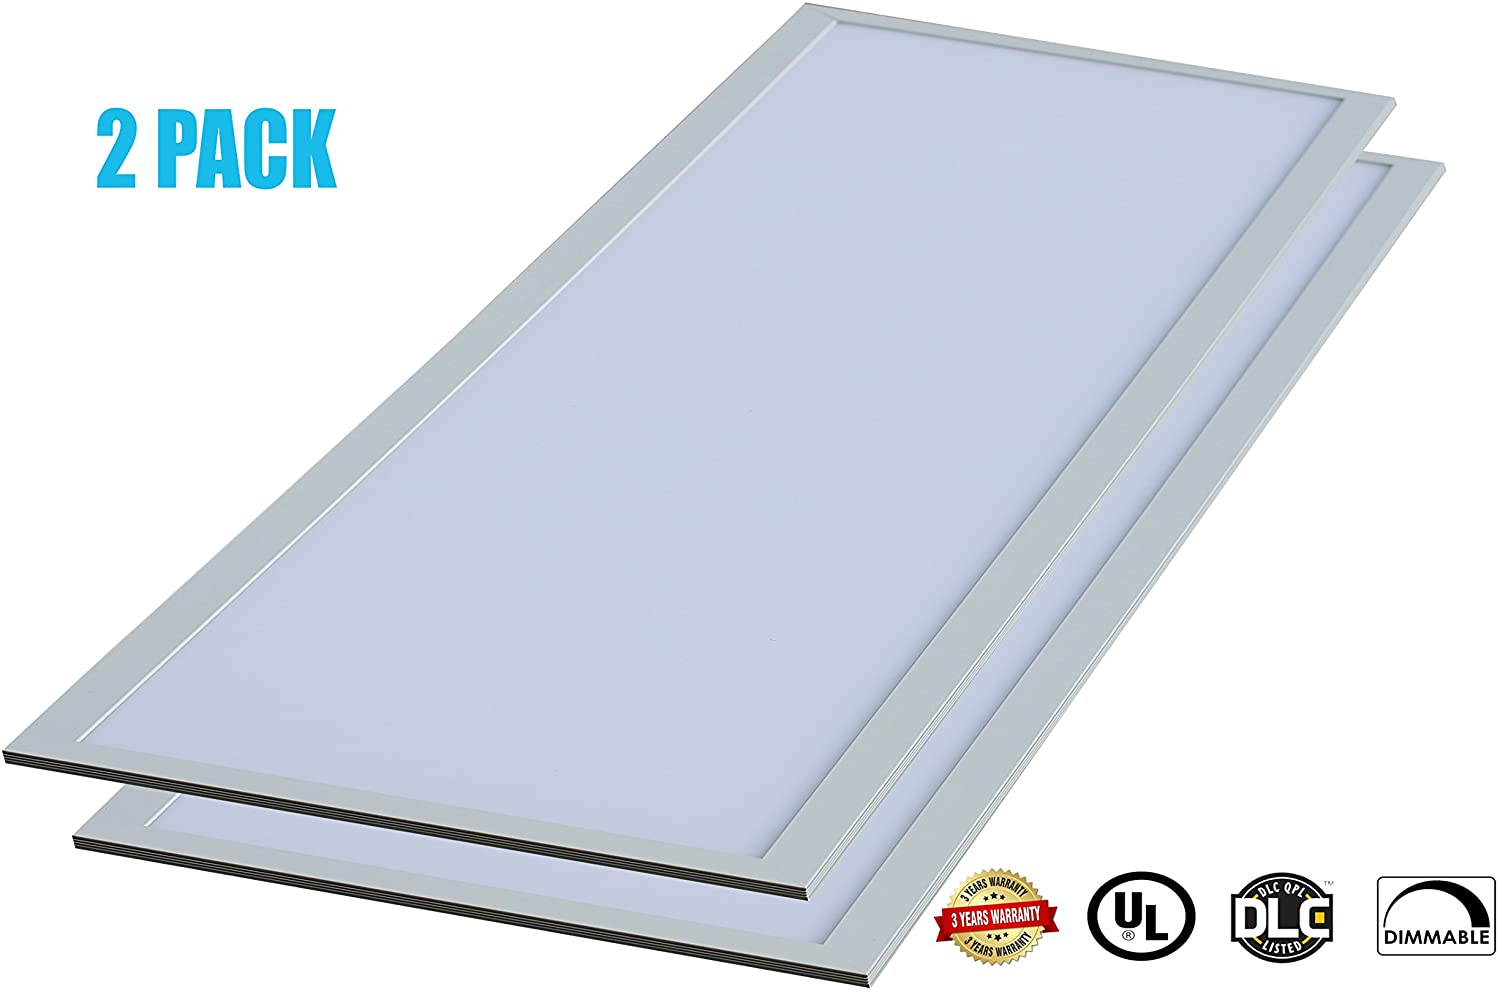 CANOPUS 2x4 FT LED Light Panel 0-10V Dimmable, Drop Ceiling Flat Lighting 50W, 3500K (Natural White), 4250 Lumens, Bright, 24x48 Inch Troffer Fixtures {Energy Star, UL-Listed} (Pack of 2)